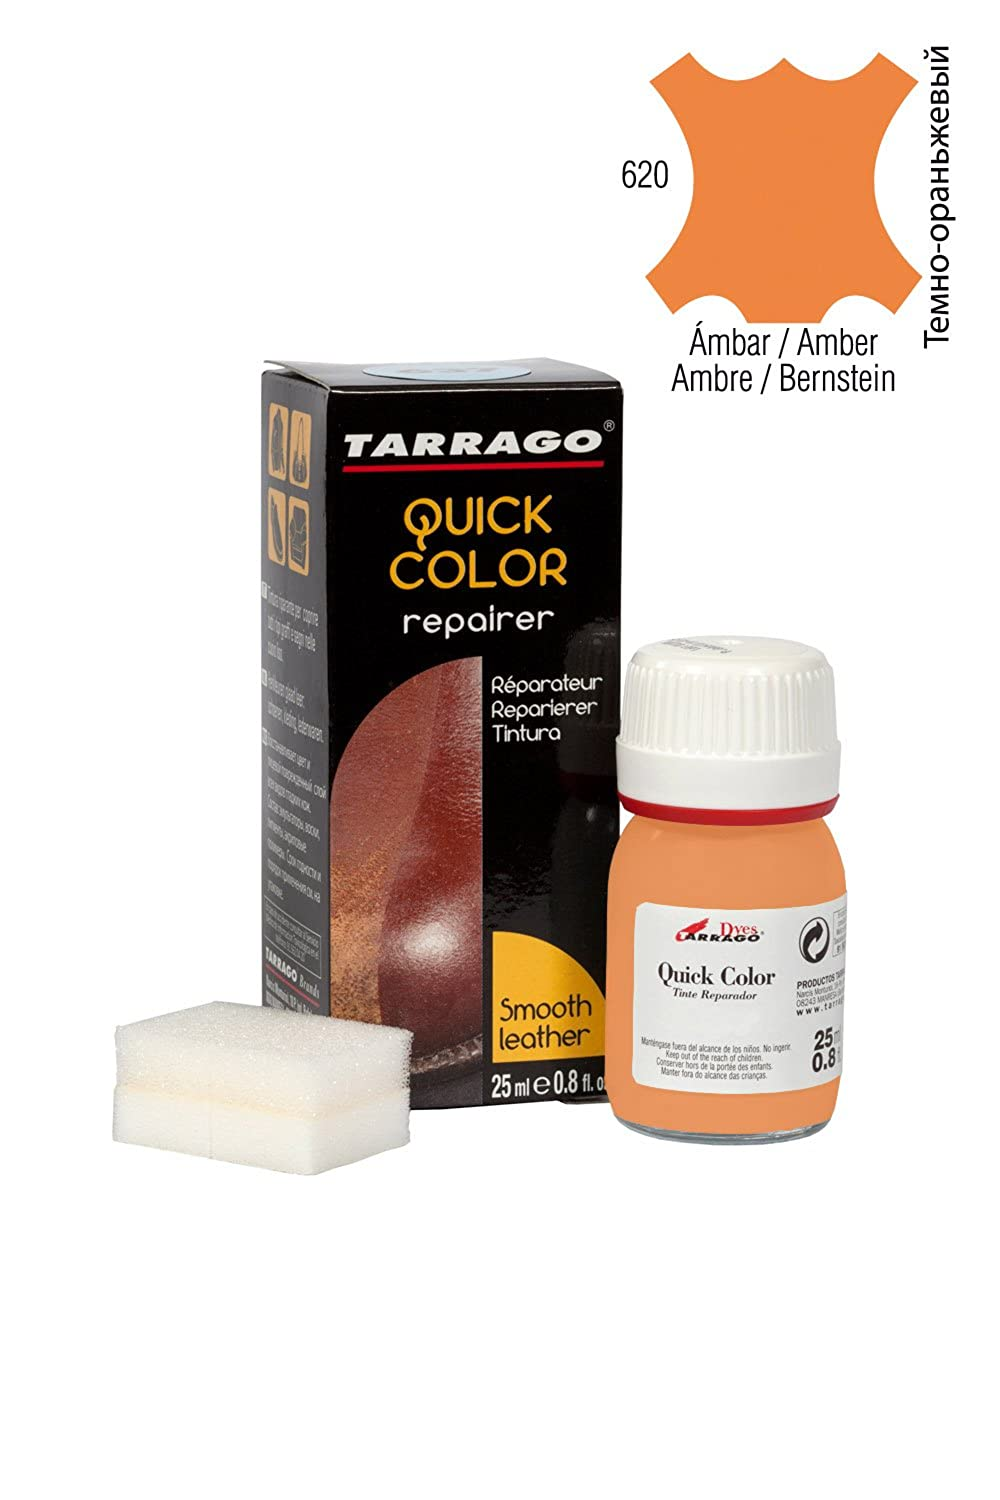 Buy tarrago self shine color dye 25ml. Double #40 smoke gray and other polishes & dyes at amazon. Com. Our wide selection is eligible for free shipping and free returns.